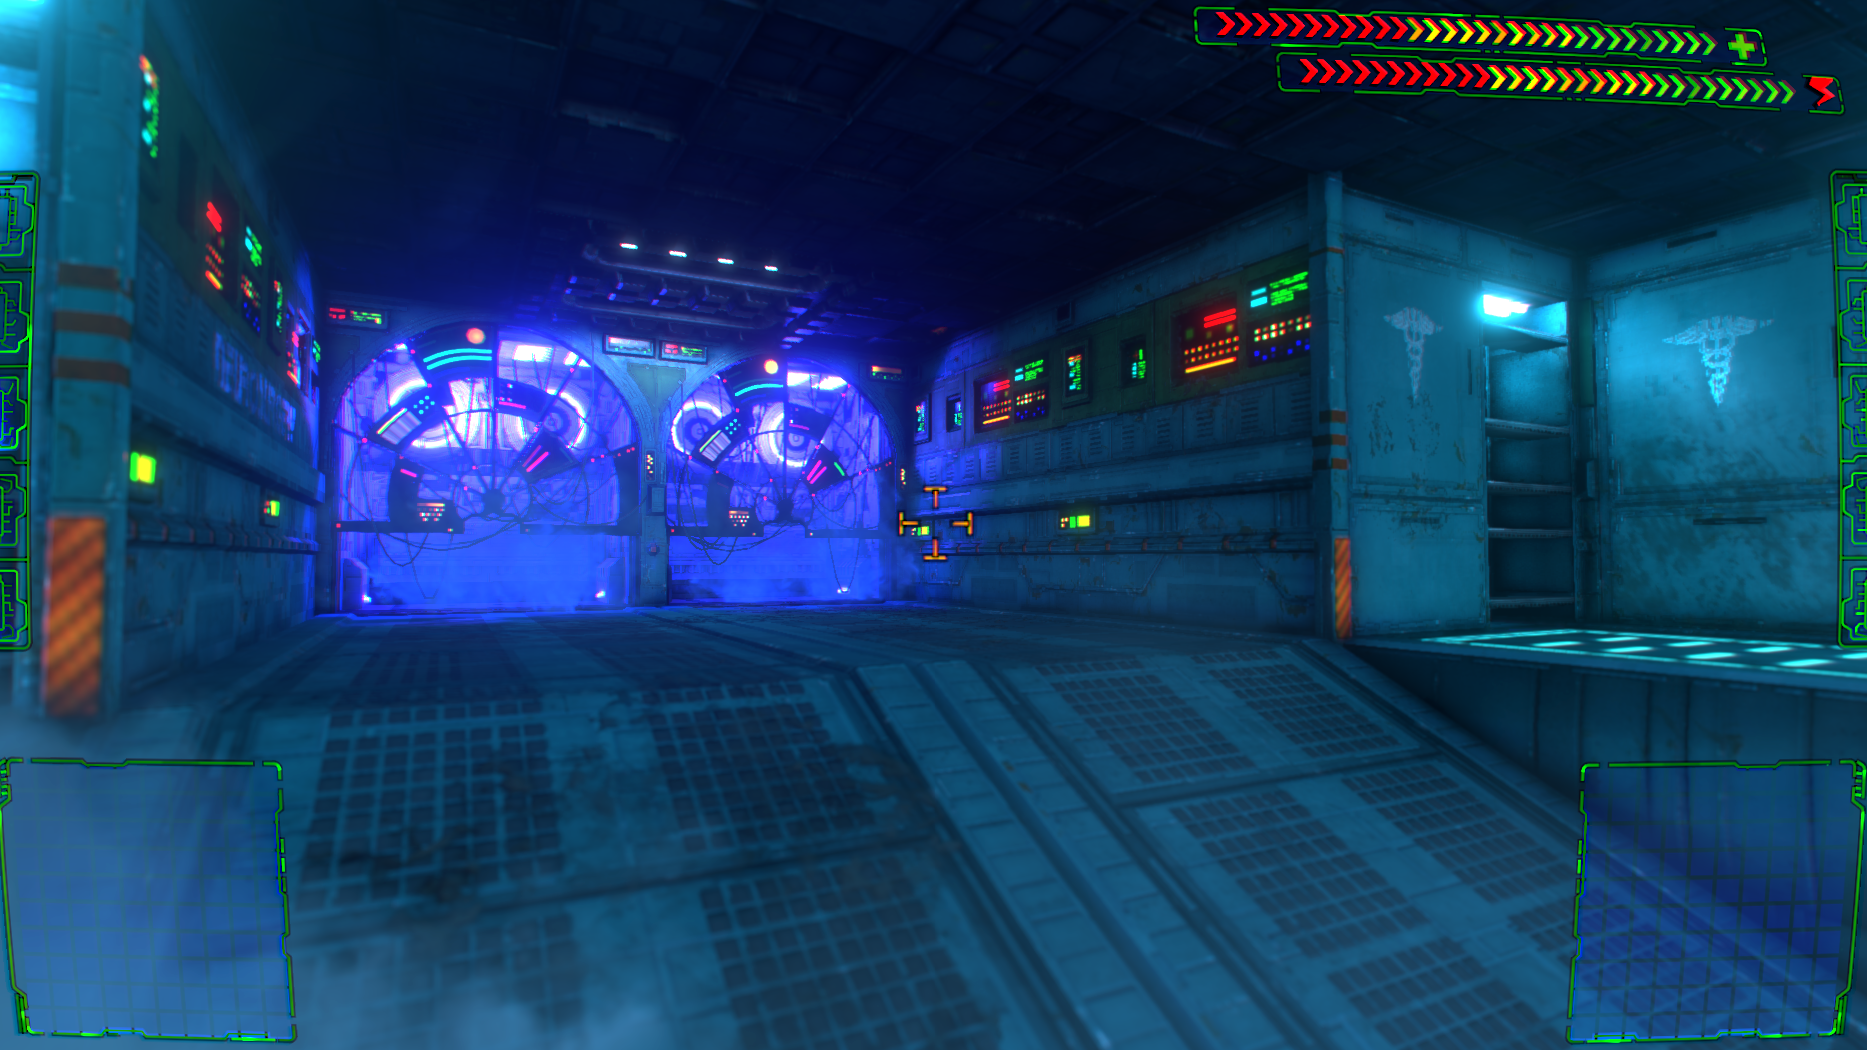 System Shock is being reimagined, and we've got the first look